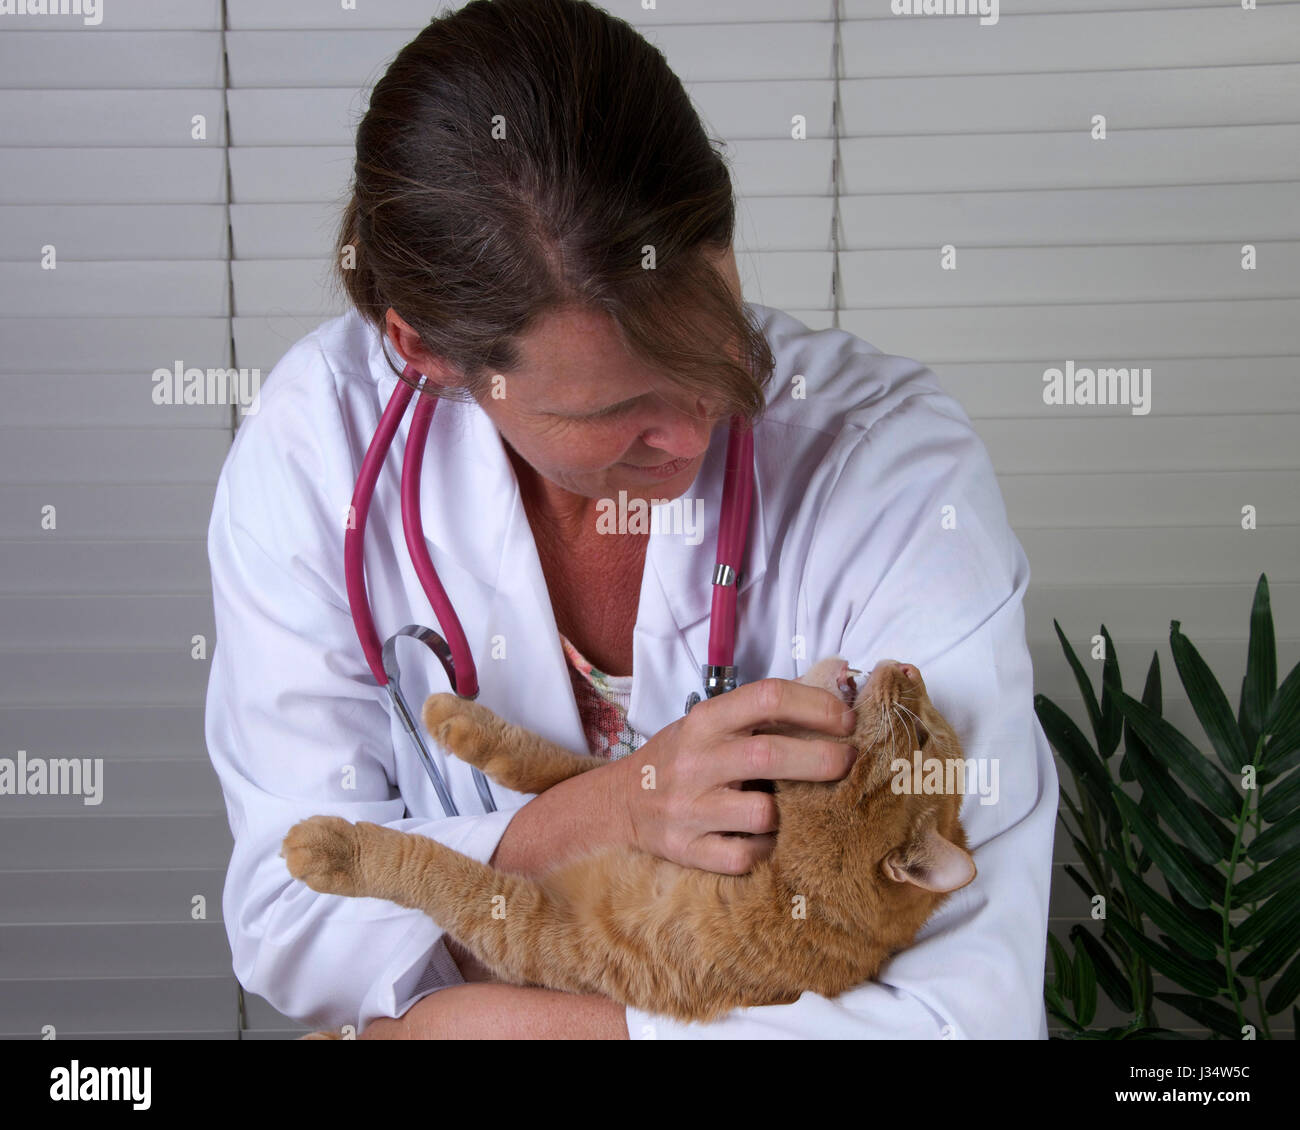 Model released image with female veterinarian examining male orange tabby cat on exam table - Stock Image